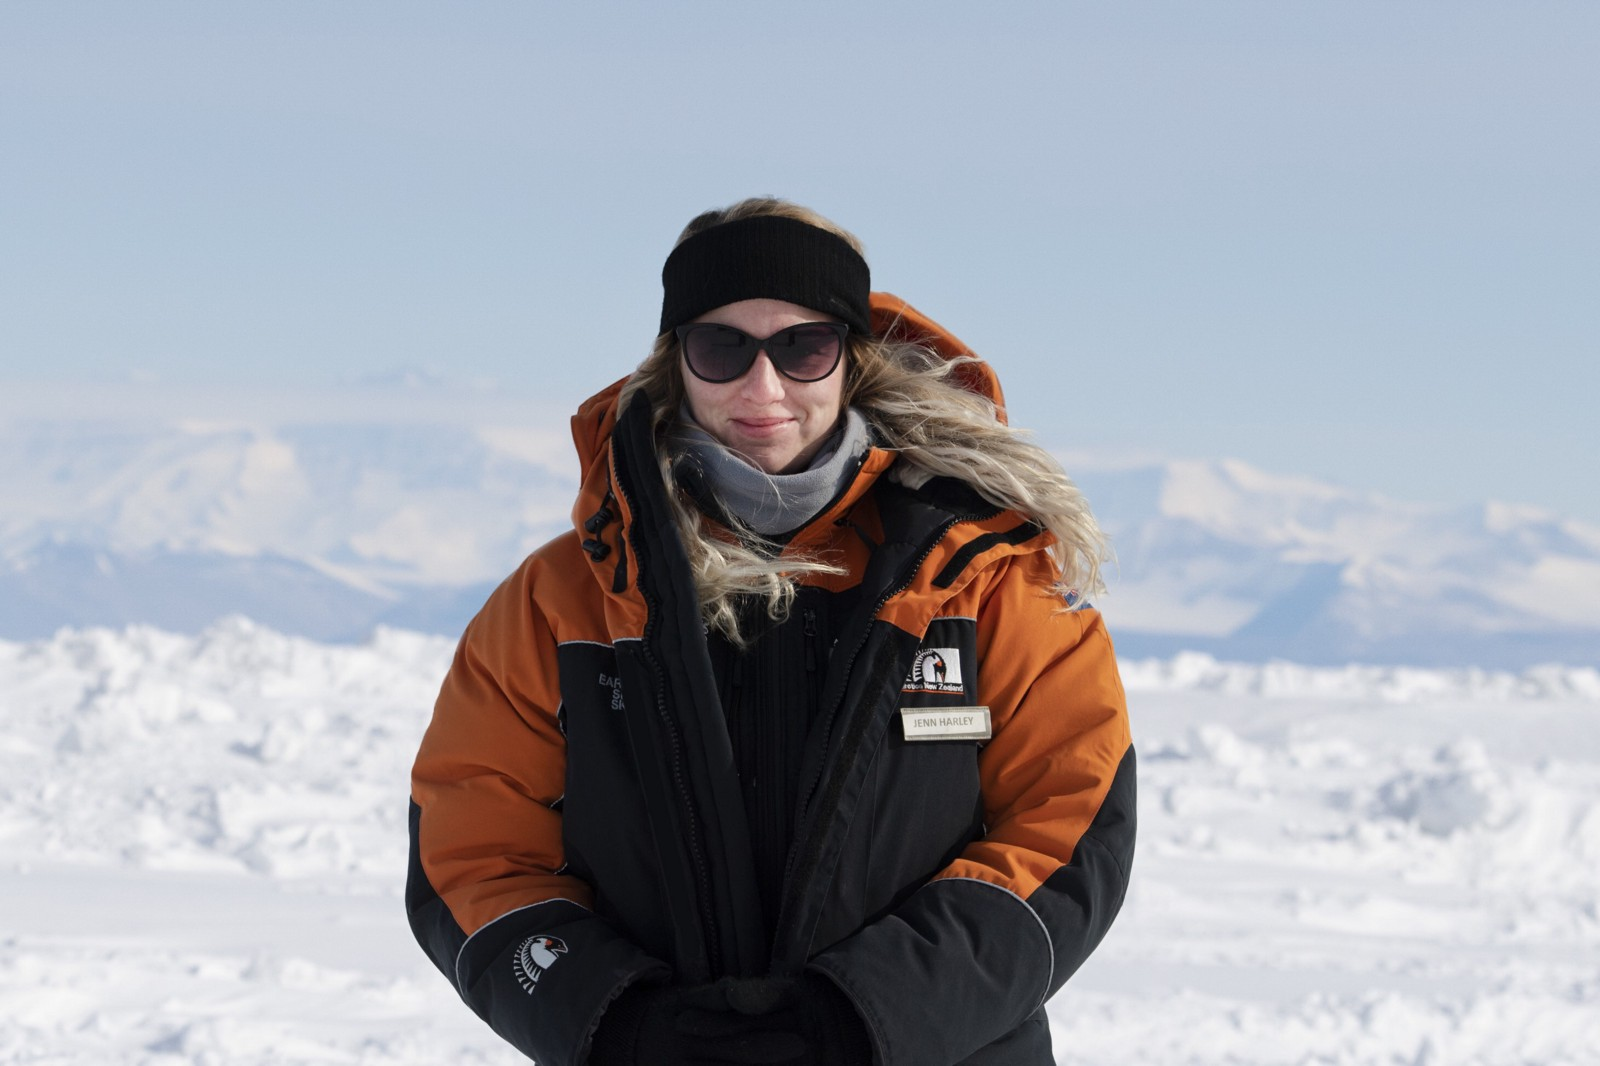 New Zealand Defence Force photographer Leading Aircraftman Jenn Harley joined the NZDF's annual deployment to Antarctica this summer season, where NZDF personnel support scientific research programs at both Scott Base and McMurdoStation.